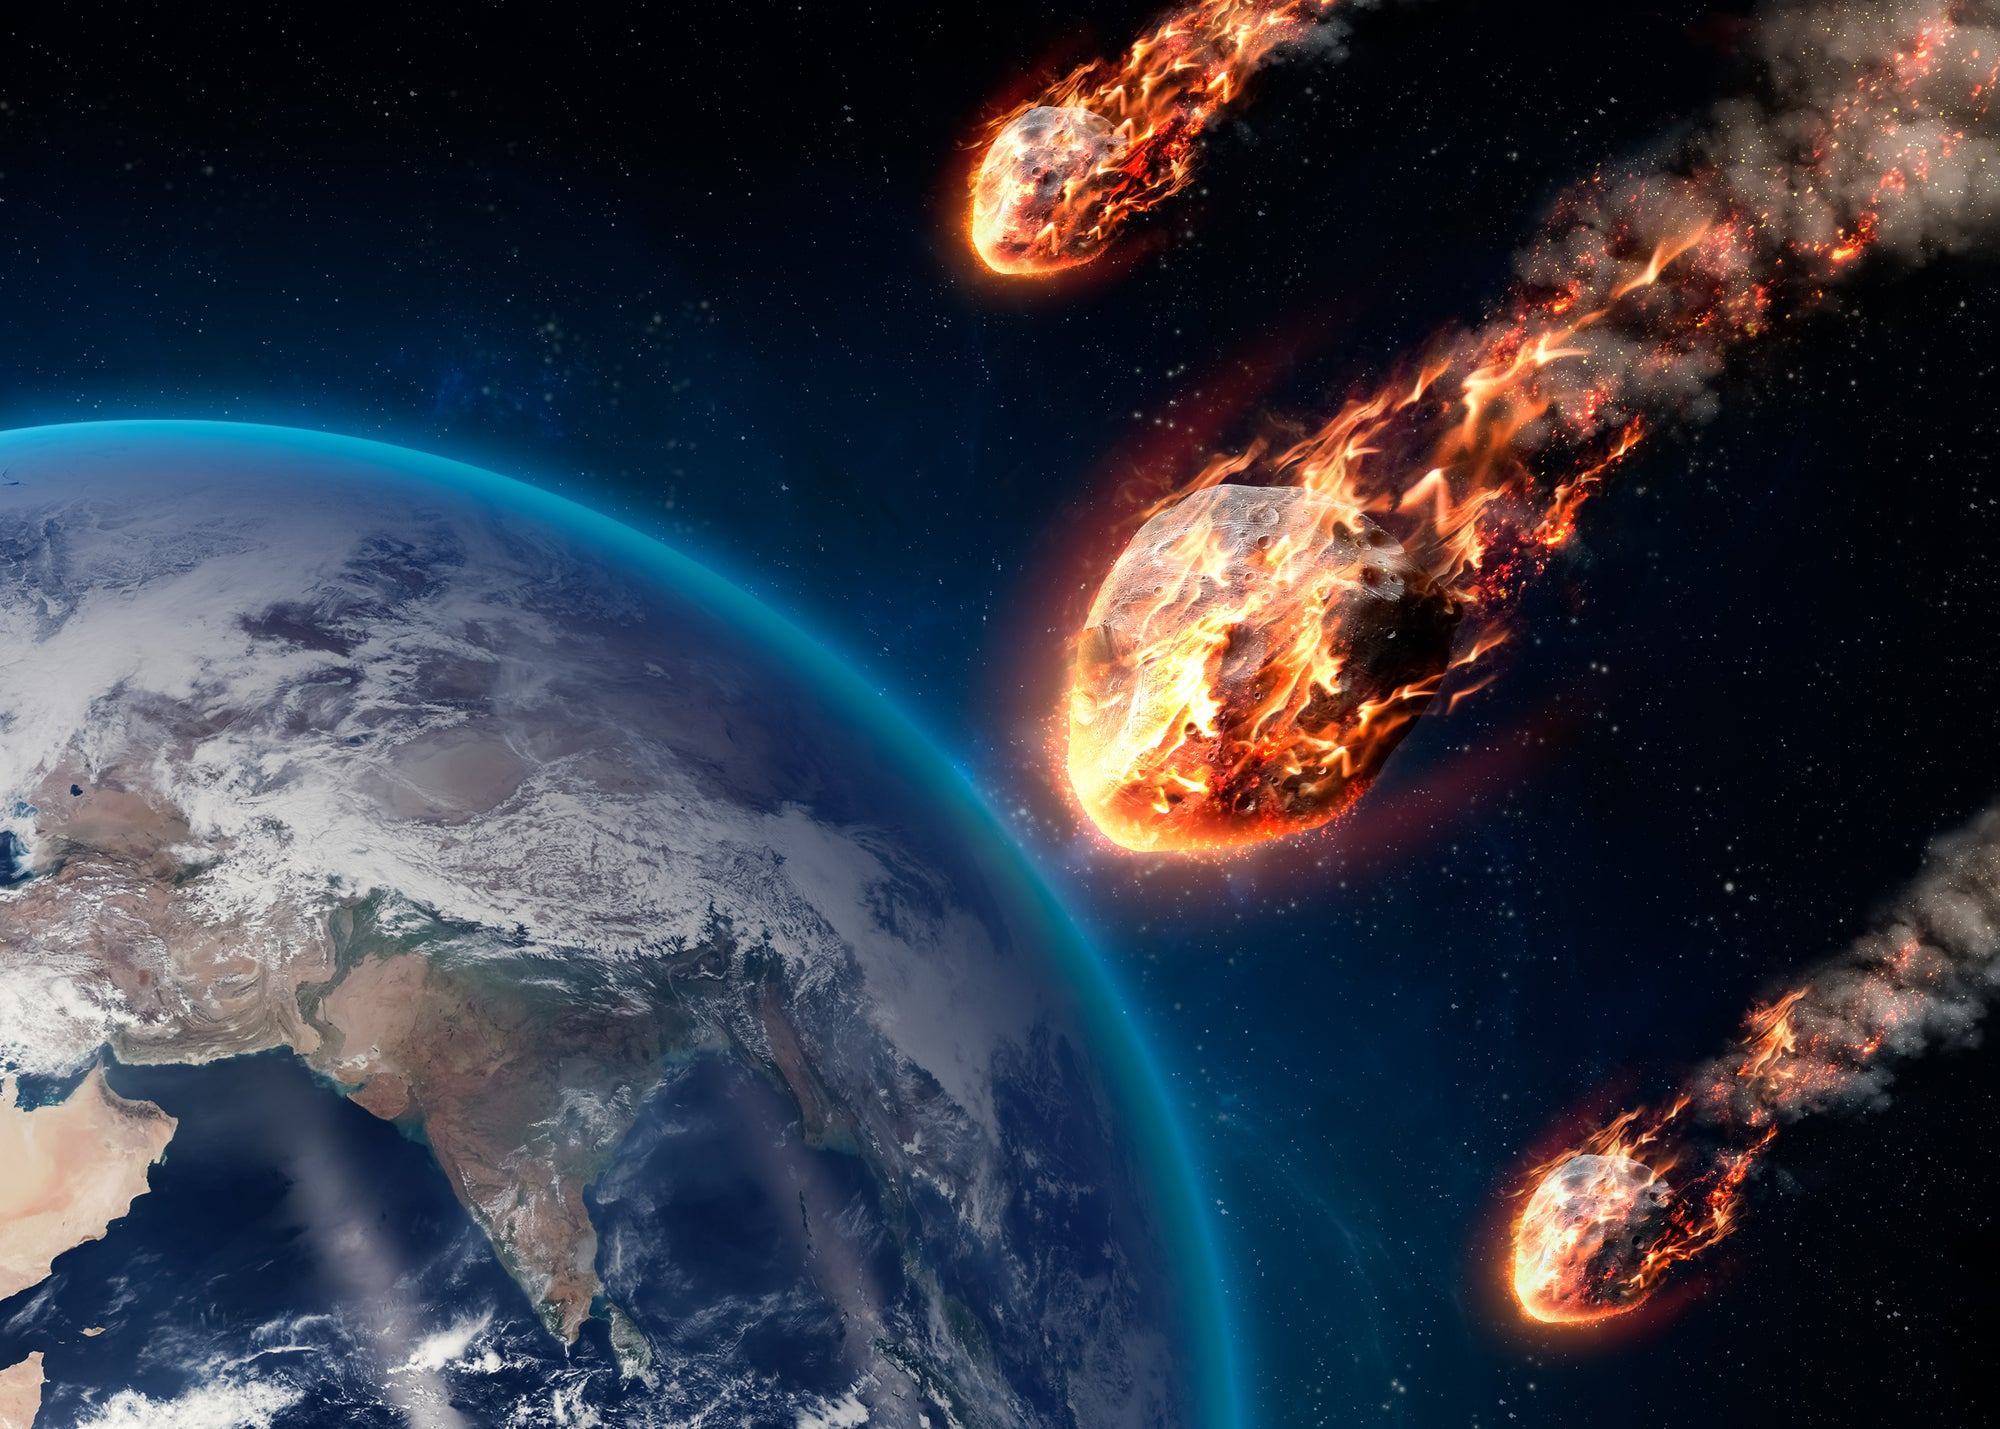 asteroids flying past earth